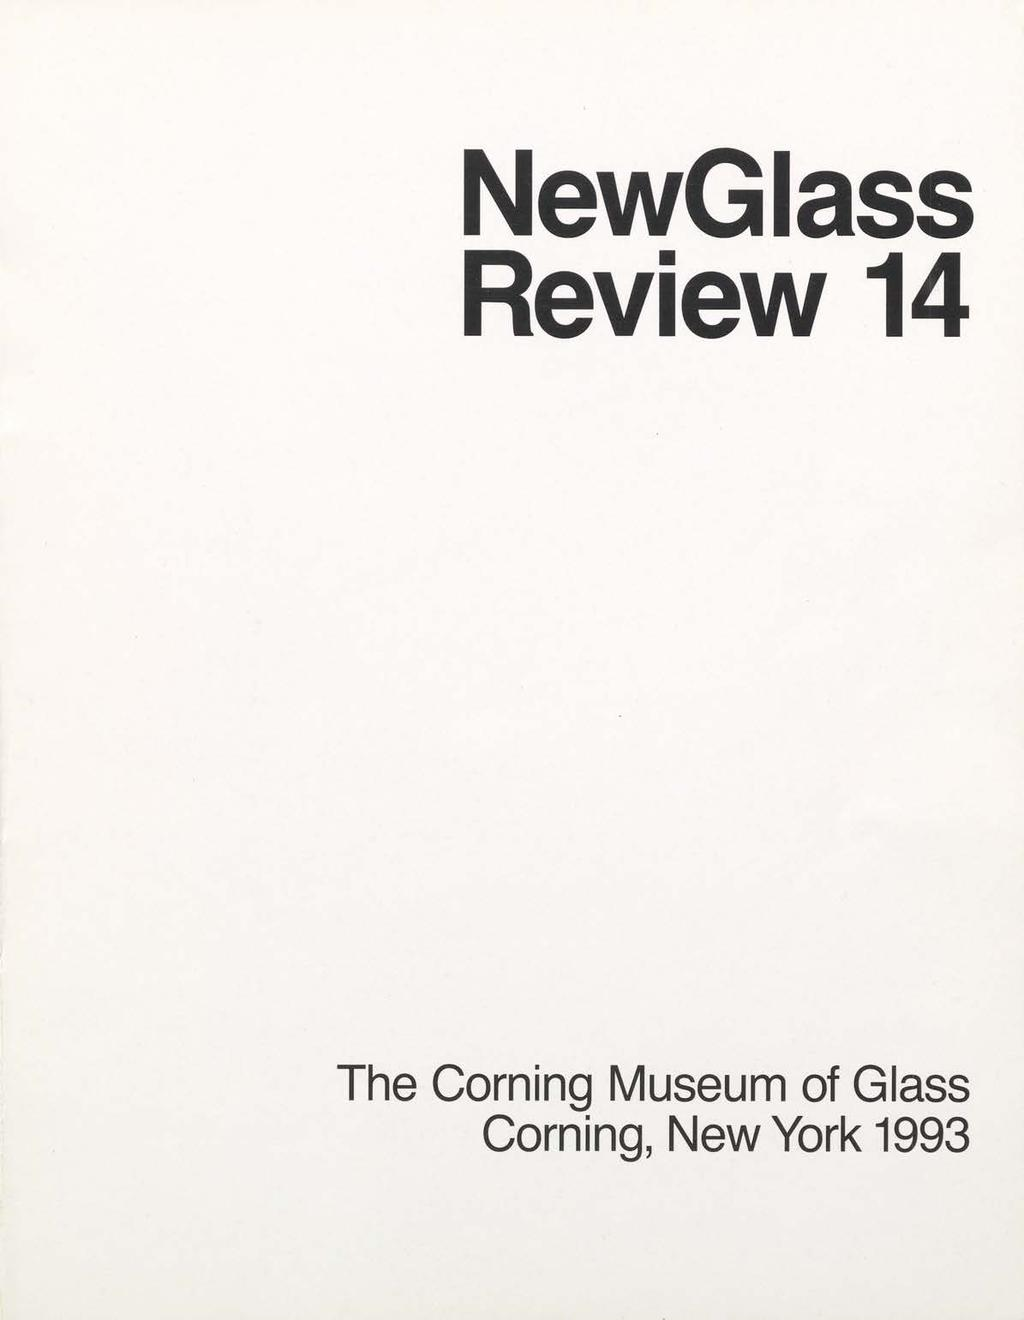 NewG lass Review 14 The Corning